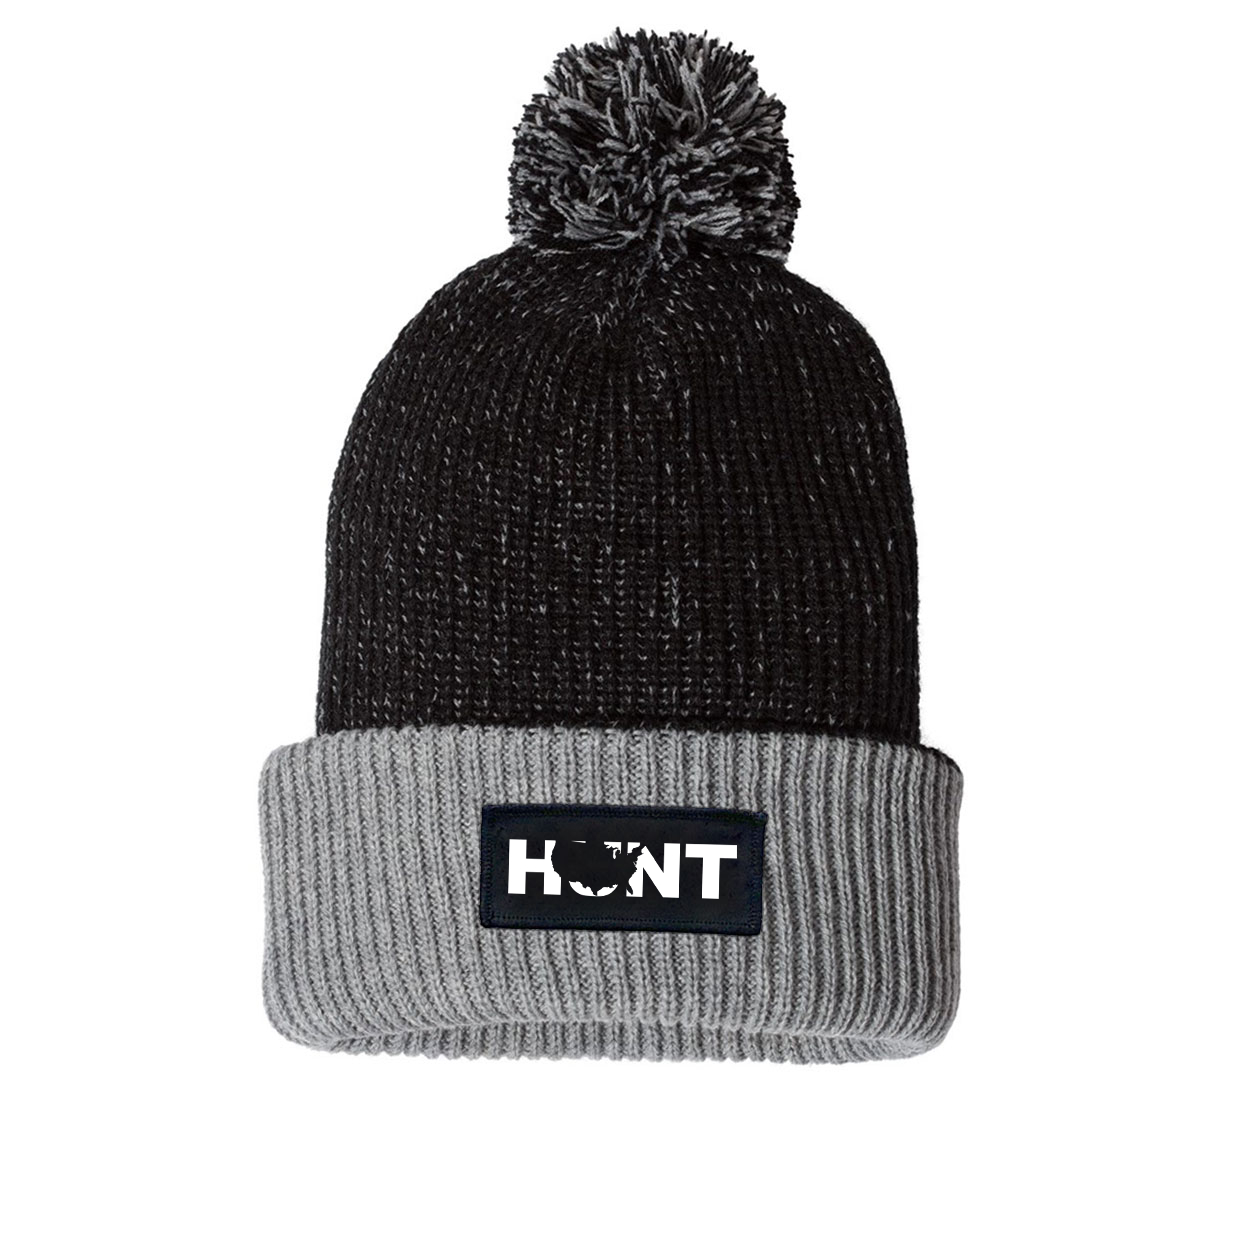 Hunt United States Night Out Woven Patch Roll Up Pom Knit Beanie Black/Gray (White Logo)